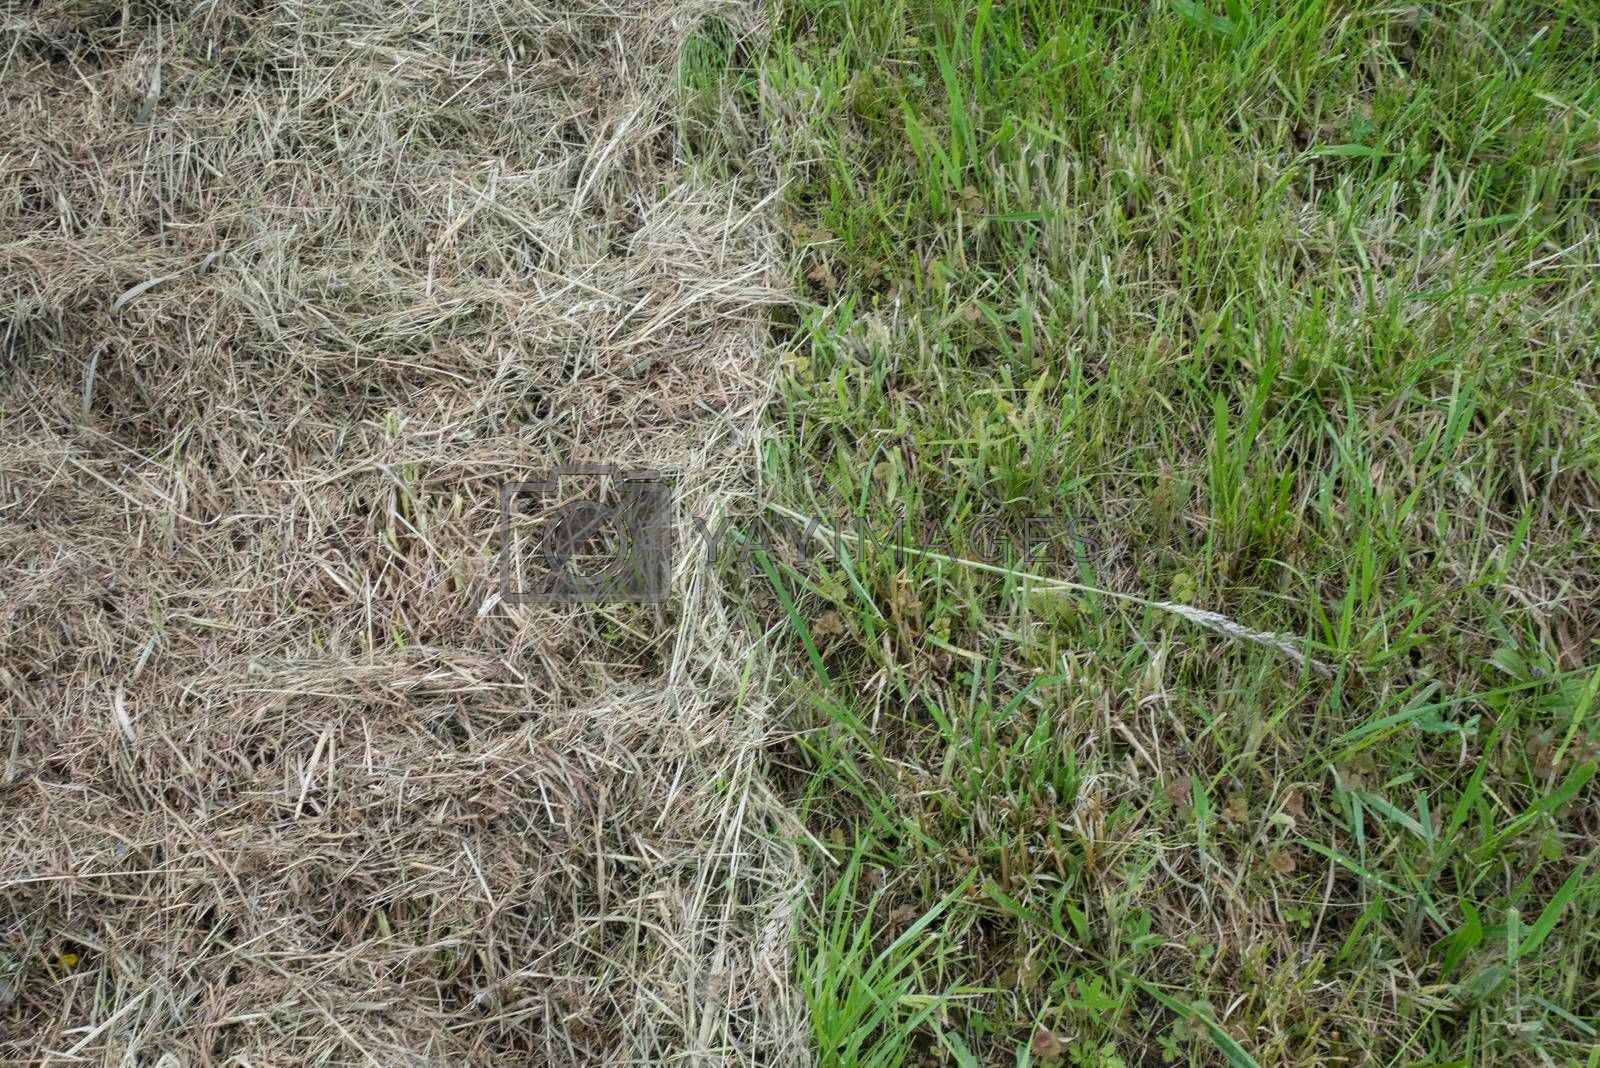 hay laying on green grass, grassland in farming and agriculture